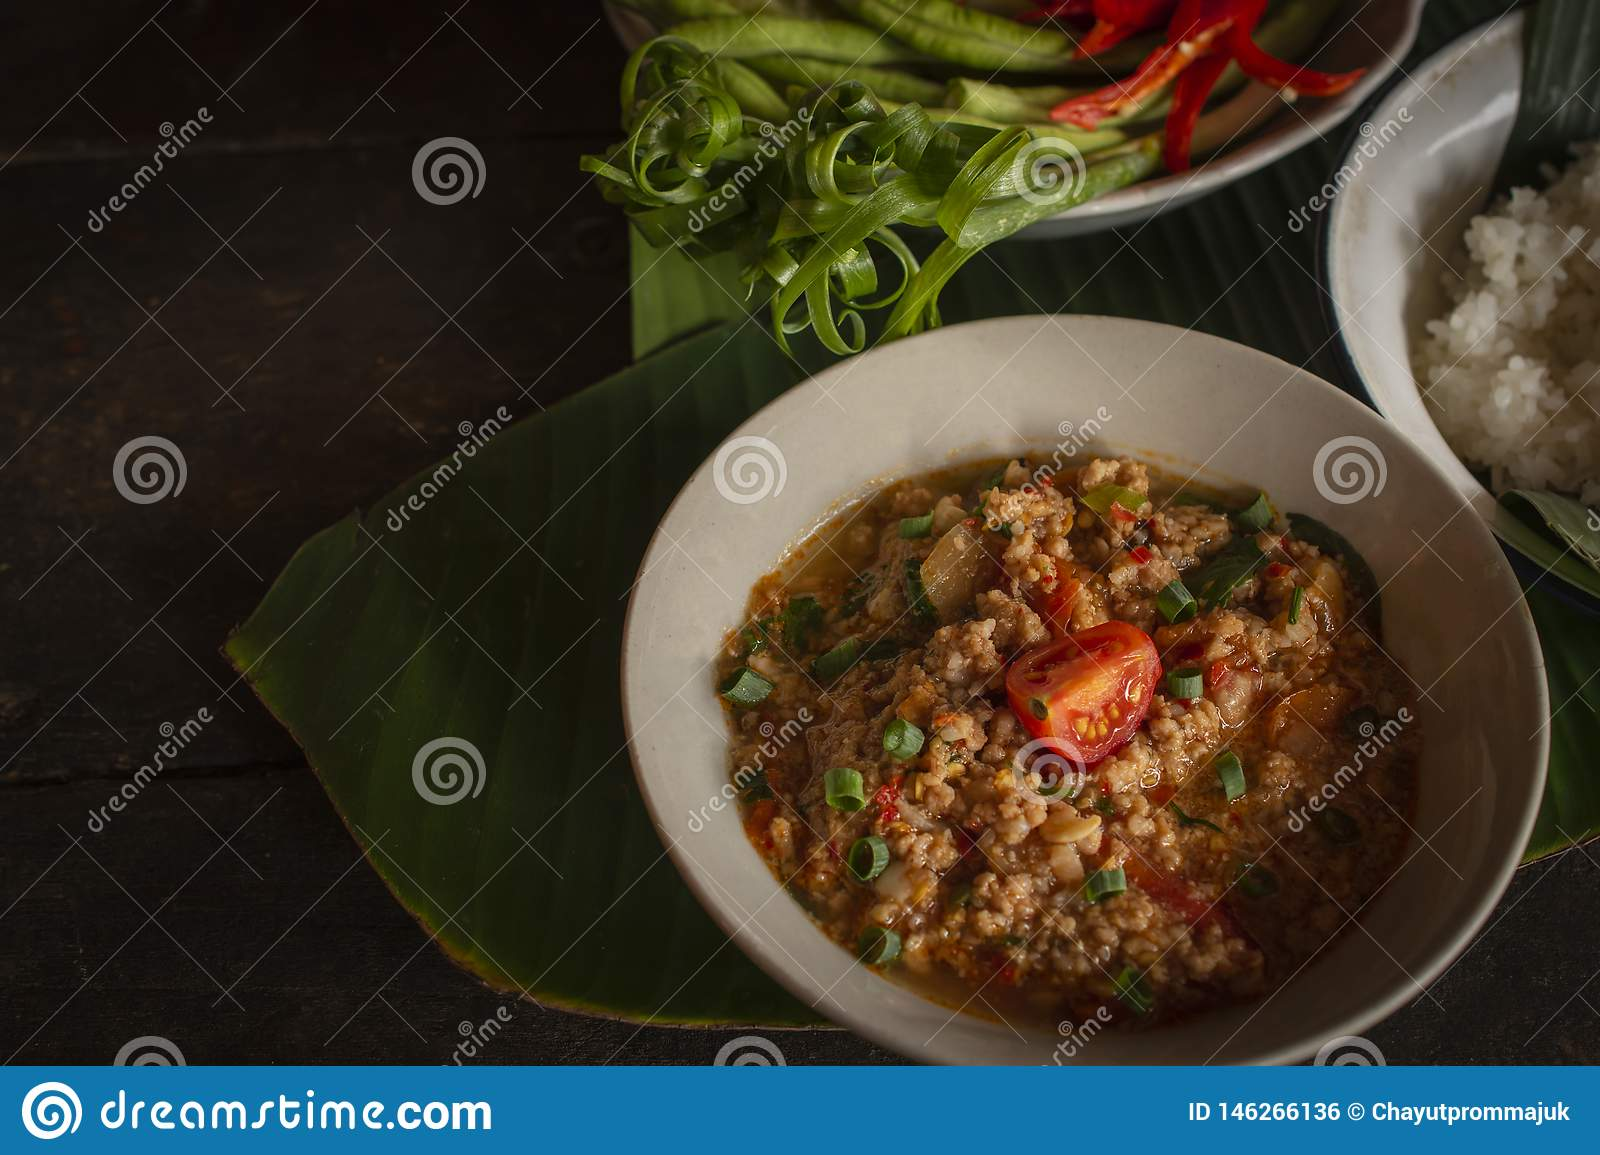 Thai Northern Style Pork and Tomato Chili Relish, nam prik ong in white bowl on wood table there are side dishes of fresh